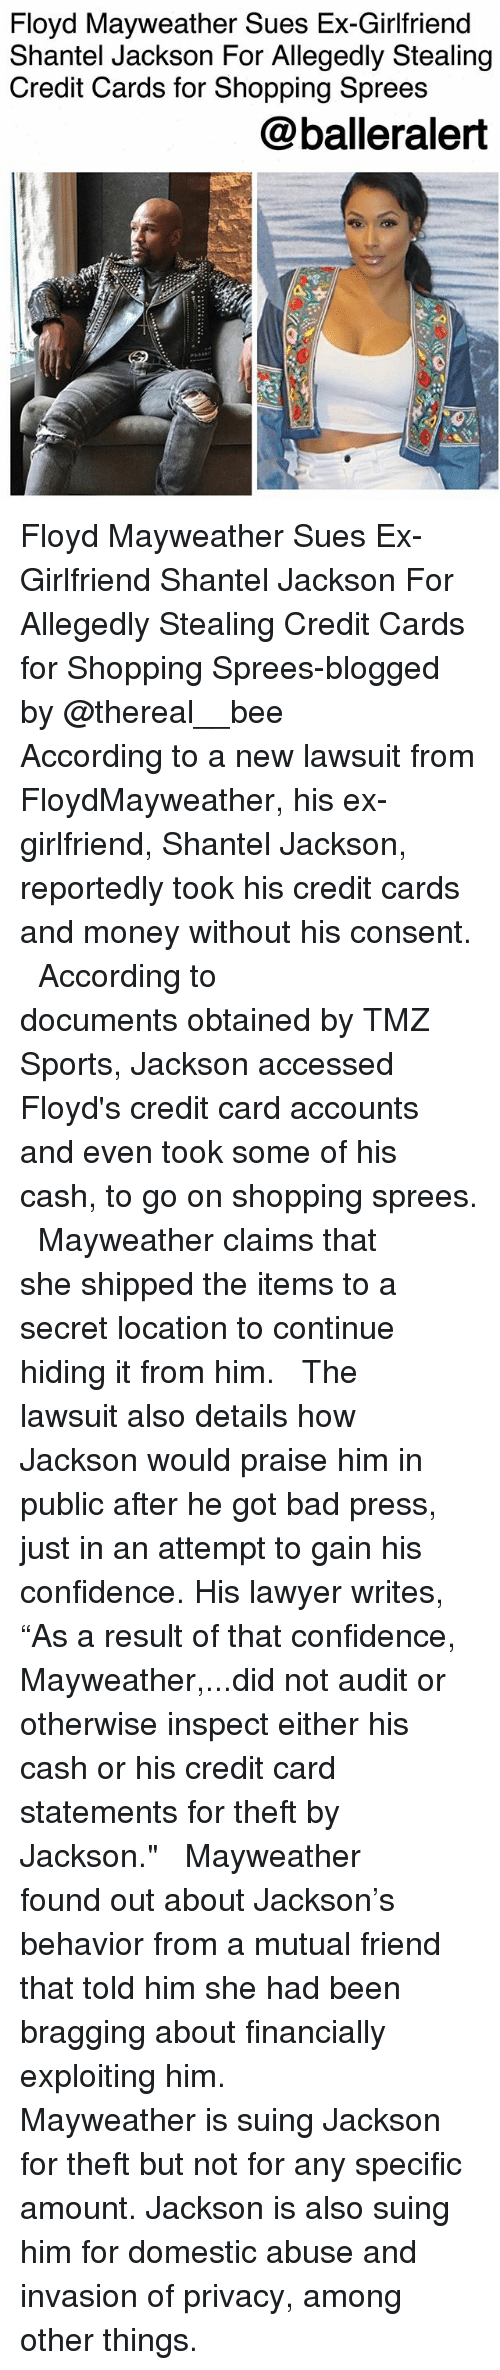 "tmz sports: Floyd Mayweather Sues Ex-Girlfriend  Shantel Jackson For Allegedly Stealing  Credit Cards for Shopping Sprees  @balleralert Floyd Mayweather Sues Ex-Girlfriend Shantel Jackson For Allegedly Stealing Credit Cards for Shopping Sprees-blogged by @thereal__bee ⠀⠀⠀⠀⠀⠀⠀⠀⠀ ⠀⠀ According to a new lawsuit from FloydMayweather, his ex-girlfriend, Shantel Jackson, reportedly took his credit cards and money without his consent. ⠀⠀⠀⠀⠀⠀⠀⠀⠀ ⠀⠀ According to documents obtained by TMZ Sports, Jackson accessed Floyd's credit card accounts and even took some of his cash, to go on shopping sprees. ⠀⠀⠀⠀⠀⠀⠀⠀⠀ ⠀⠀ Mayweather claims that she shipped the items to a secret location to continue hiding it from him. ⠀⠀⠀⠀⠀⠀⠀⠀⠀ ⠀⠀ The lawsuit also details how Jackson would praise him in public after he got bad press, just in an attempt to gain his confidence. His lawyer writes, ""As a result of that confidence, Mayweather,...did not audit or otherwise inspect either his cash or his credit card statements for theft by Jackson."" ⠀⠀⠀⠀⠀⠀⠀⠀⠀ ⠀⠀ Mayweather found out about Jackson's behavior from a mutual friend that told him she had been bragging about financially exploiting him. ⠀⠀⠀⠀⠀⠀⠀⠀⠀ ⠀⠀ Mayweather is suing Jackson for theft but not for any specific amount. Jackson is also suing him for domestic abuse and invasion of privacy, among other things."